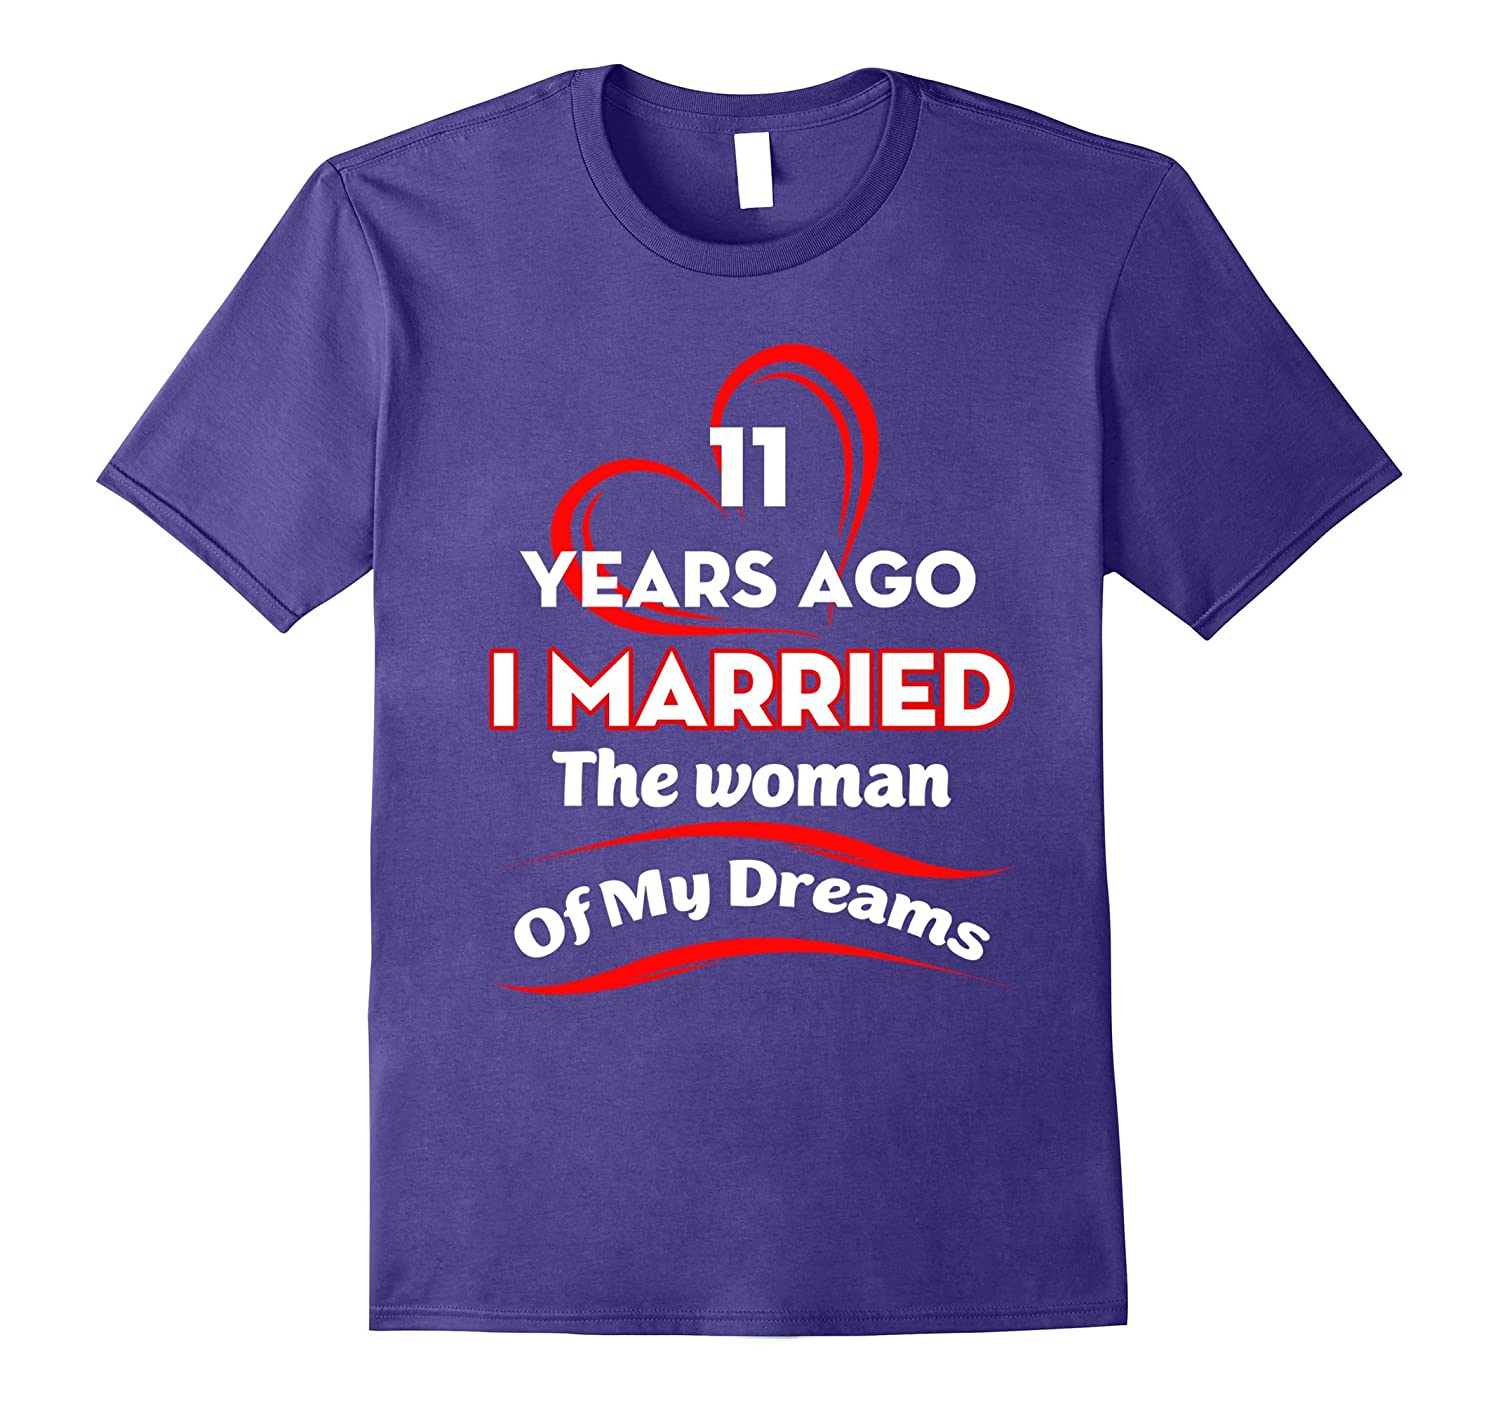 Great Wedding Gift For Husband: Great T-Shirt For Husband. Gift For 11th Wedding